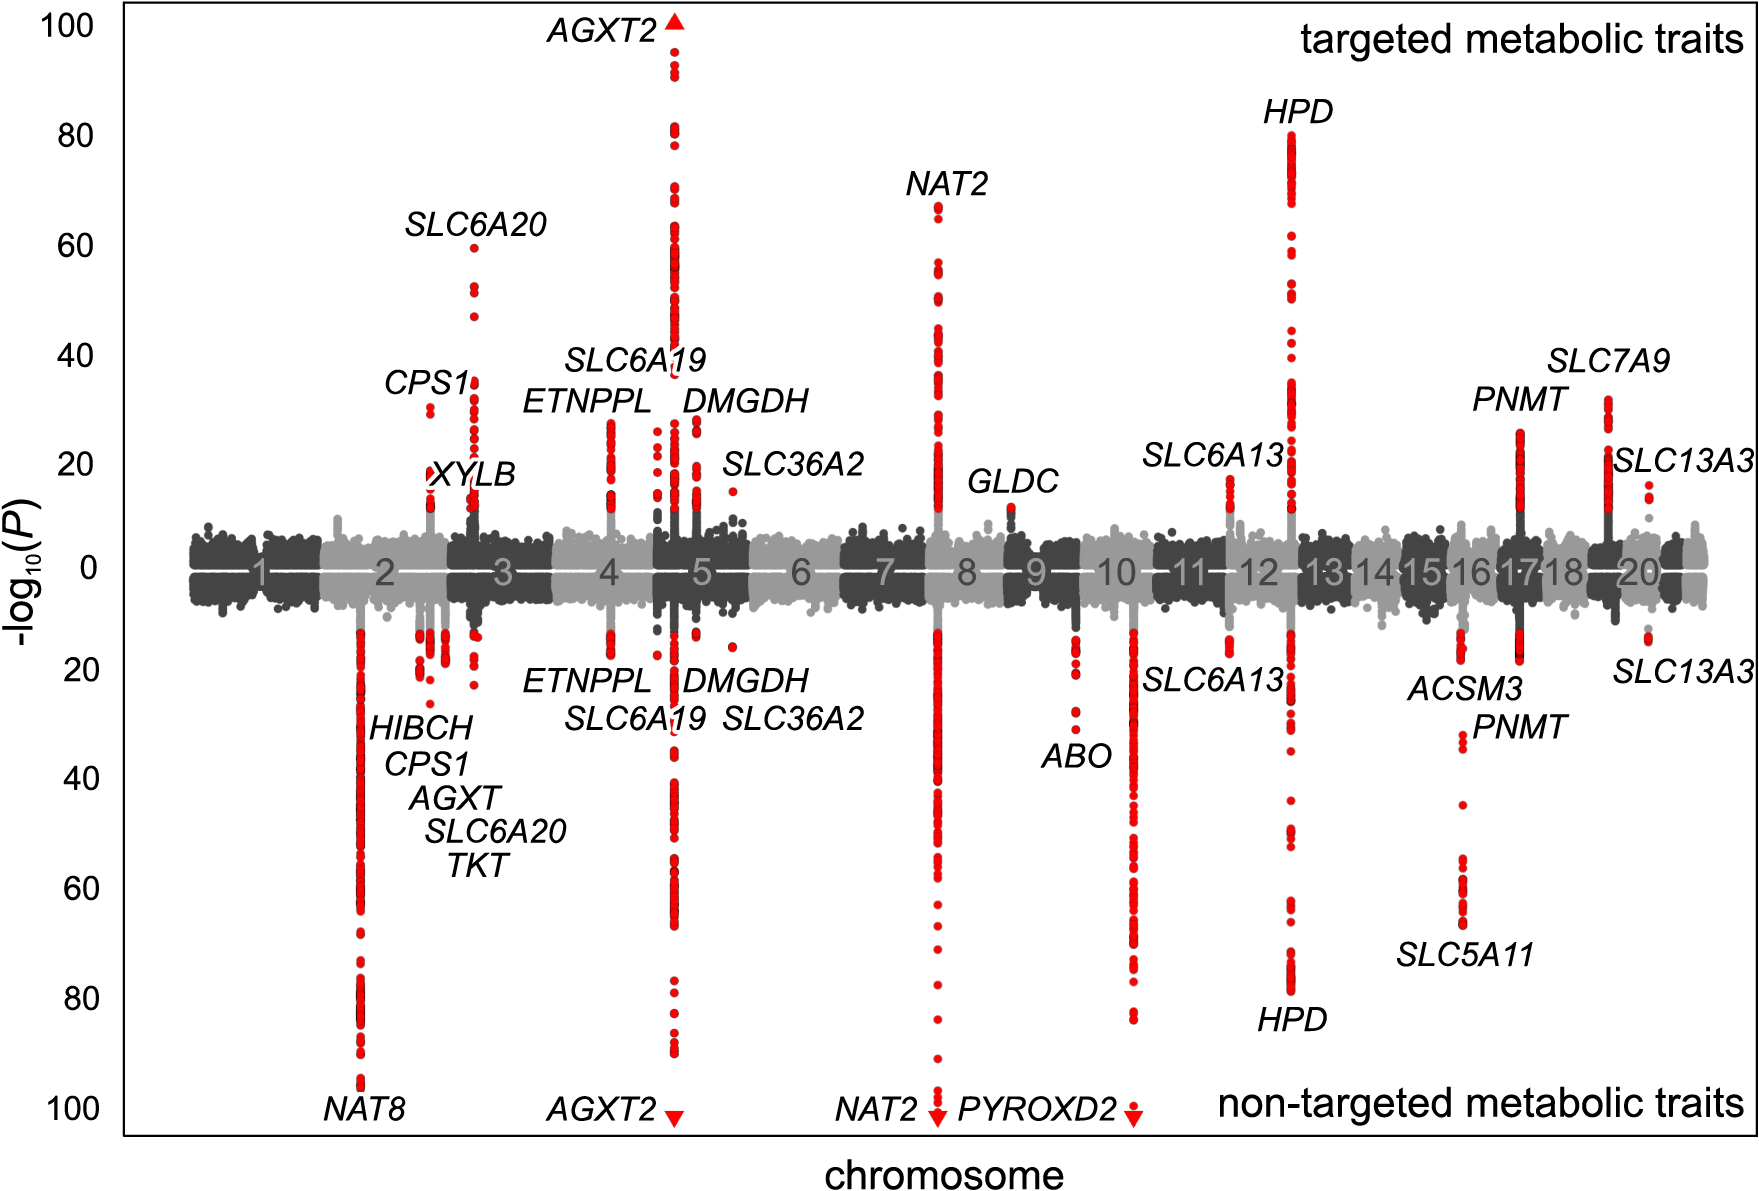 Manhattan plot of genetic associations to targeted and non-targeted traits.